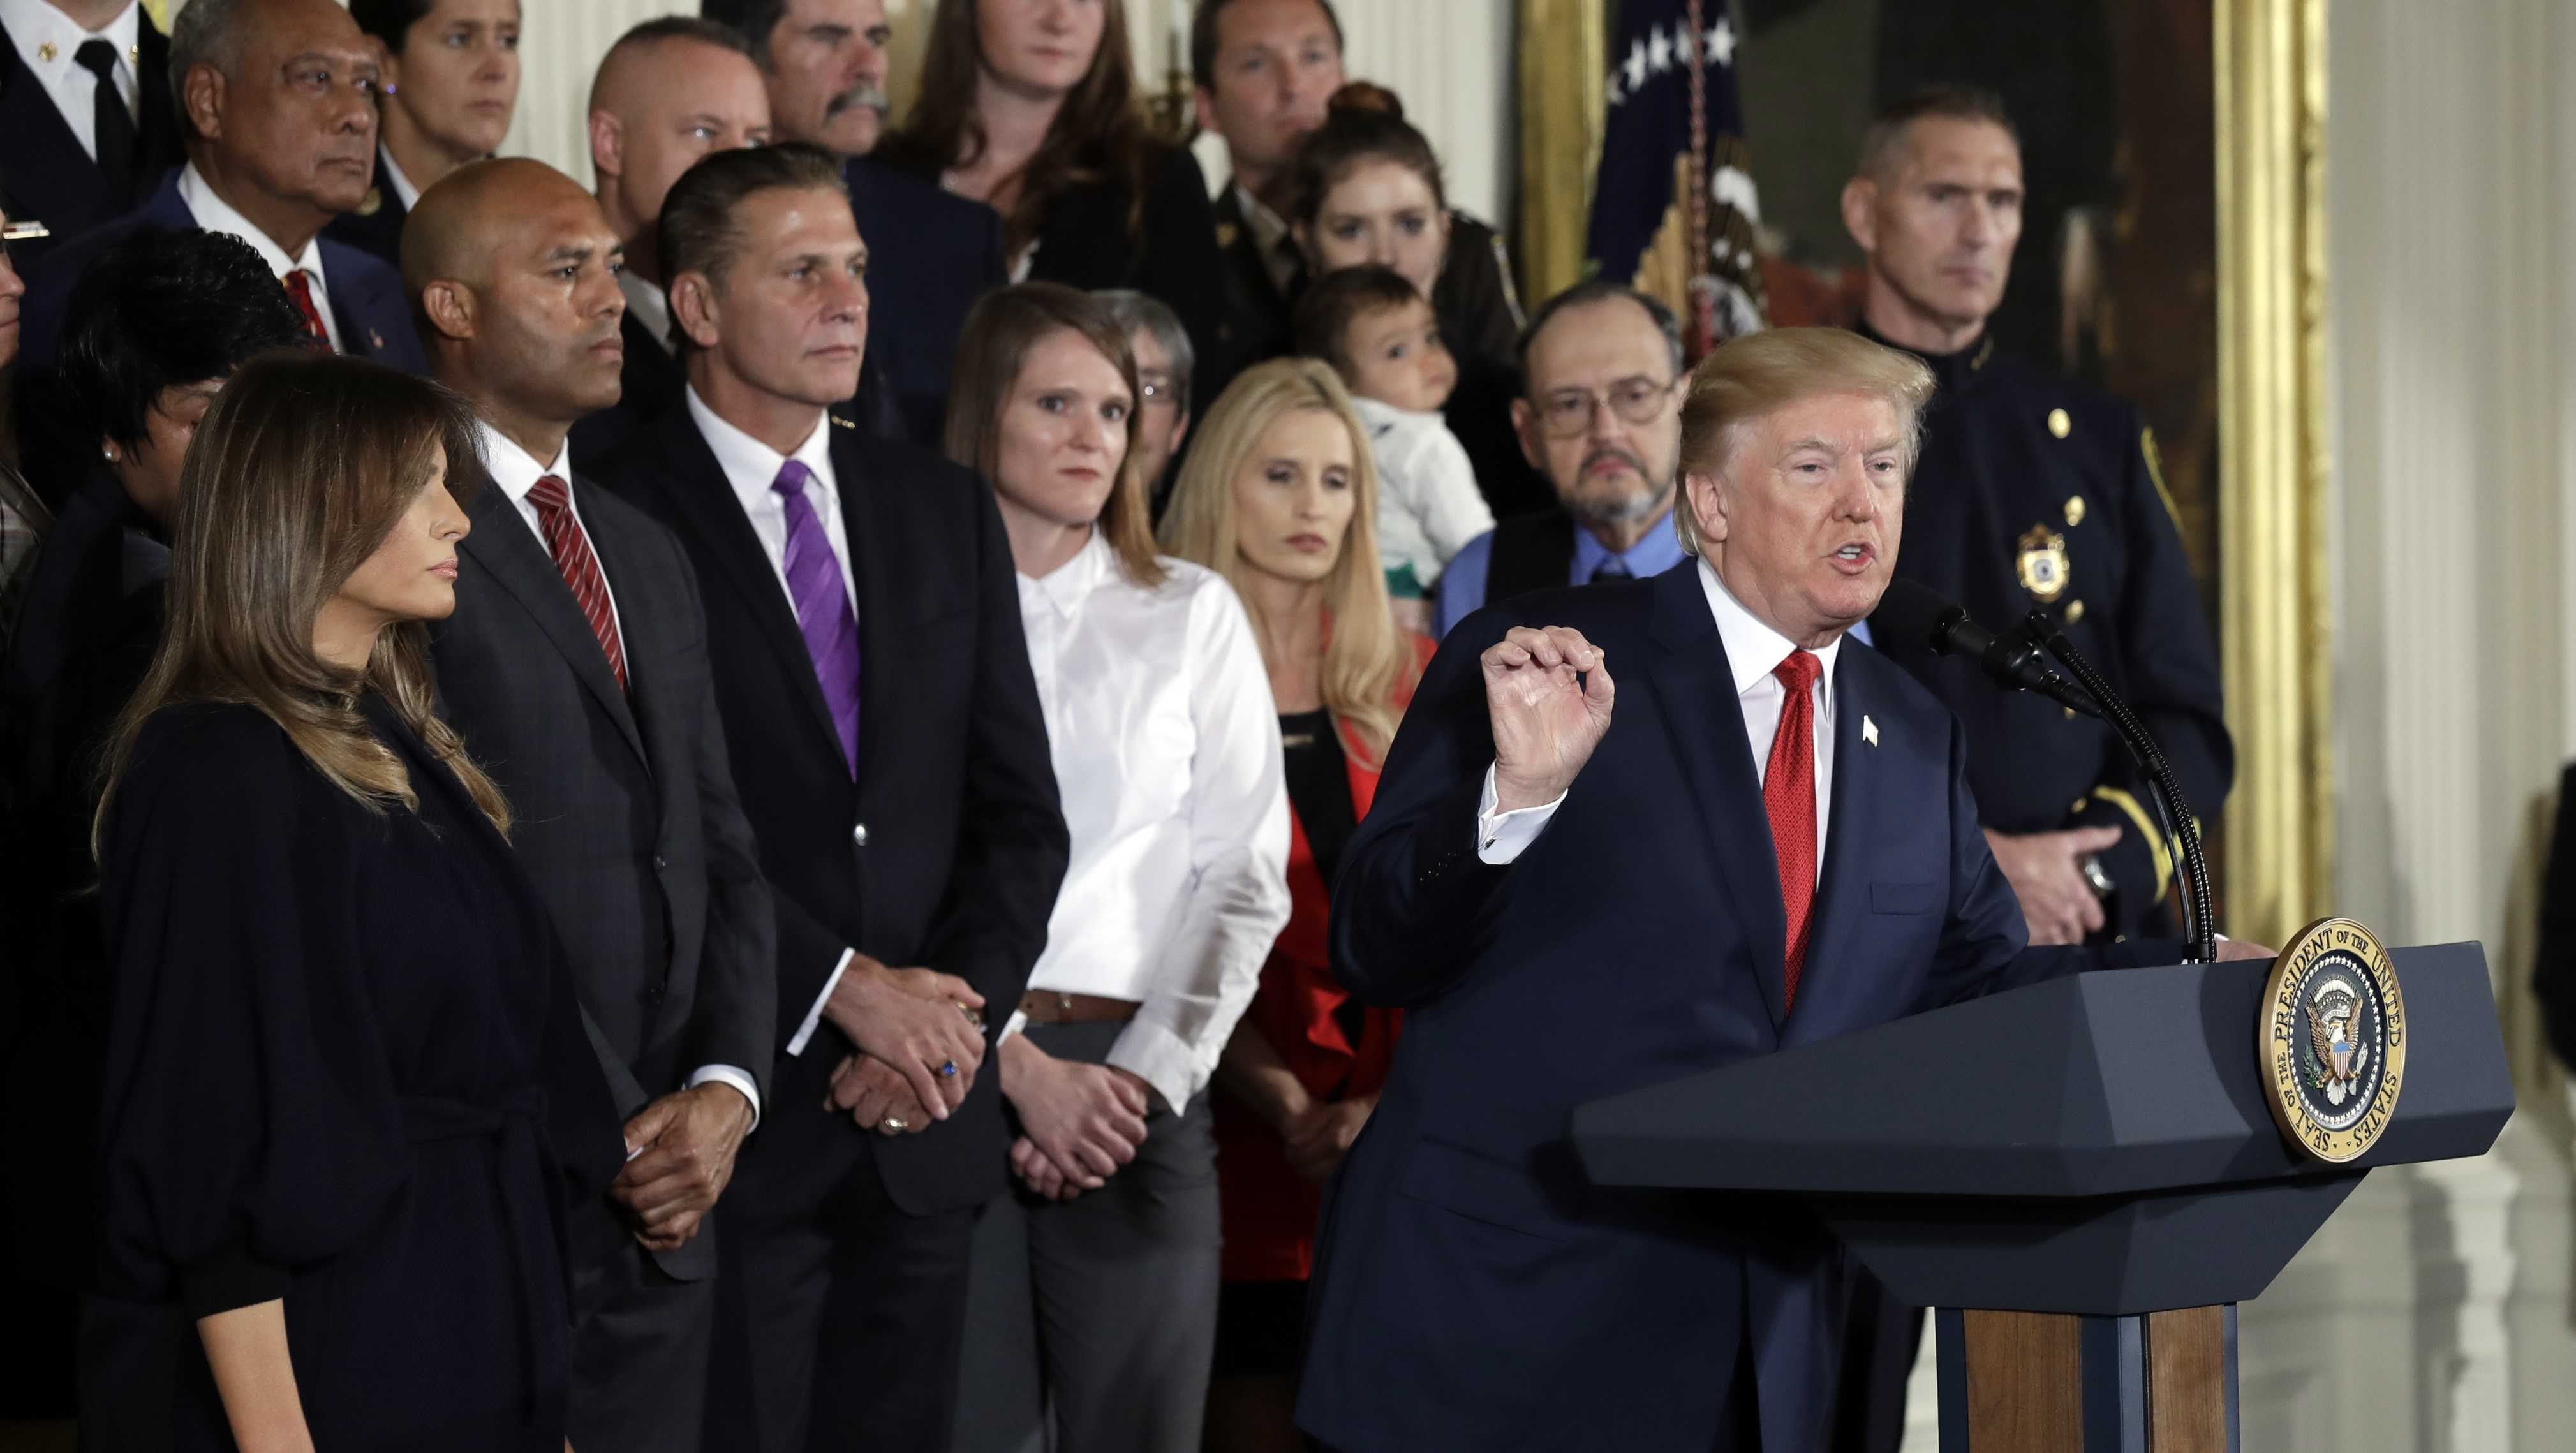 President Donald Trump speaks during an event to declare the opioid crisis a national public health emergency in the East Room of the White House, Thursday, Oct. 26, 2017, in Washington. First Lady Melania Trump listens at left.